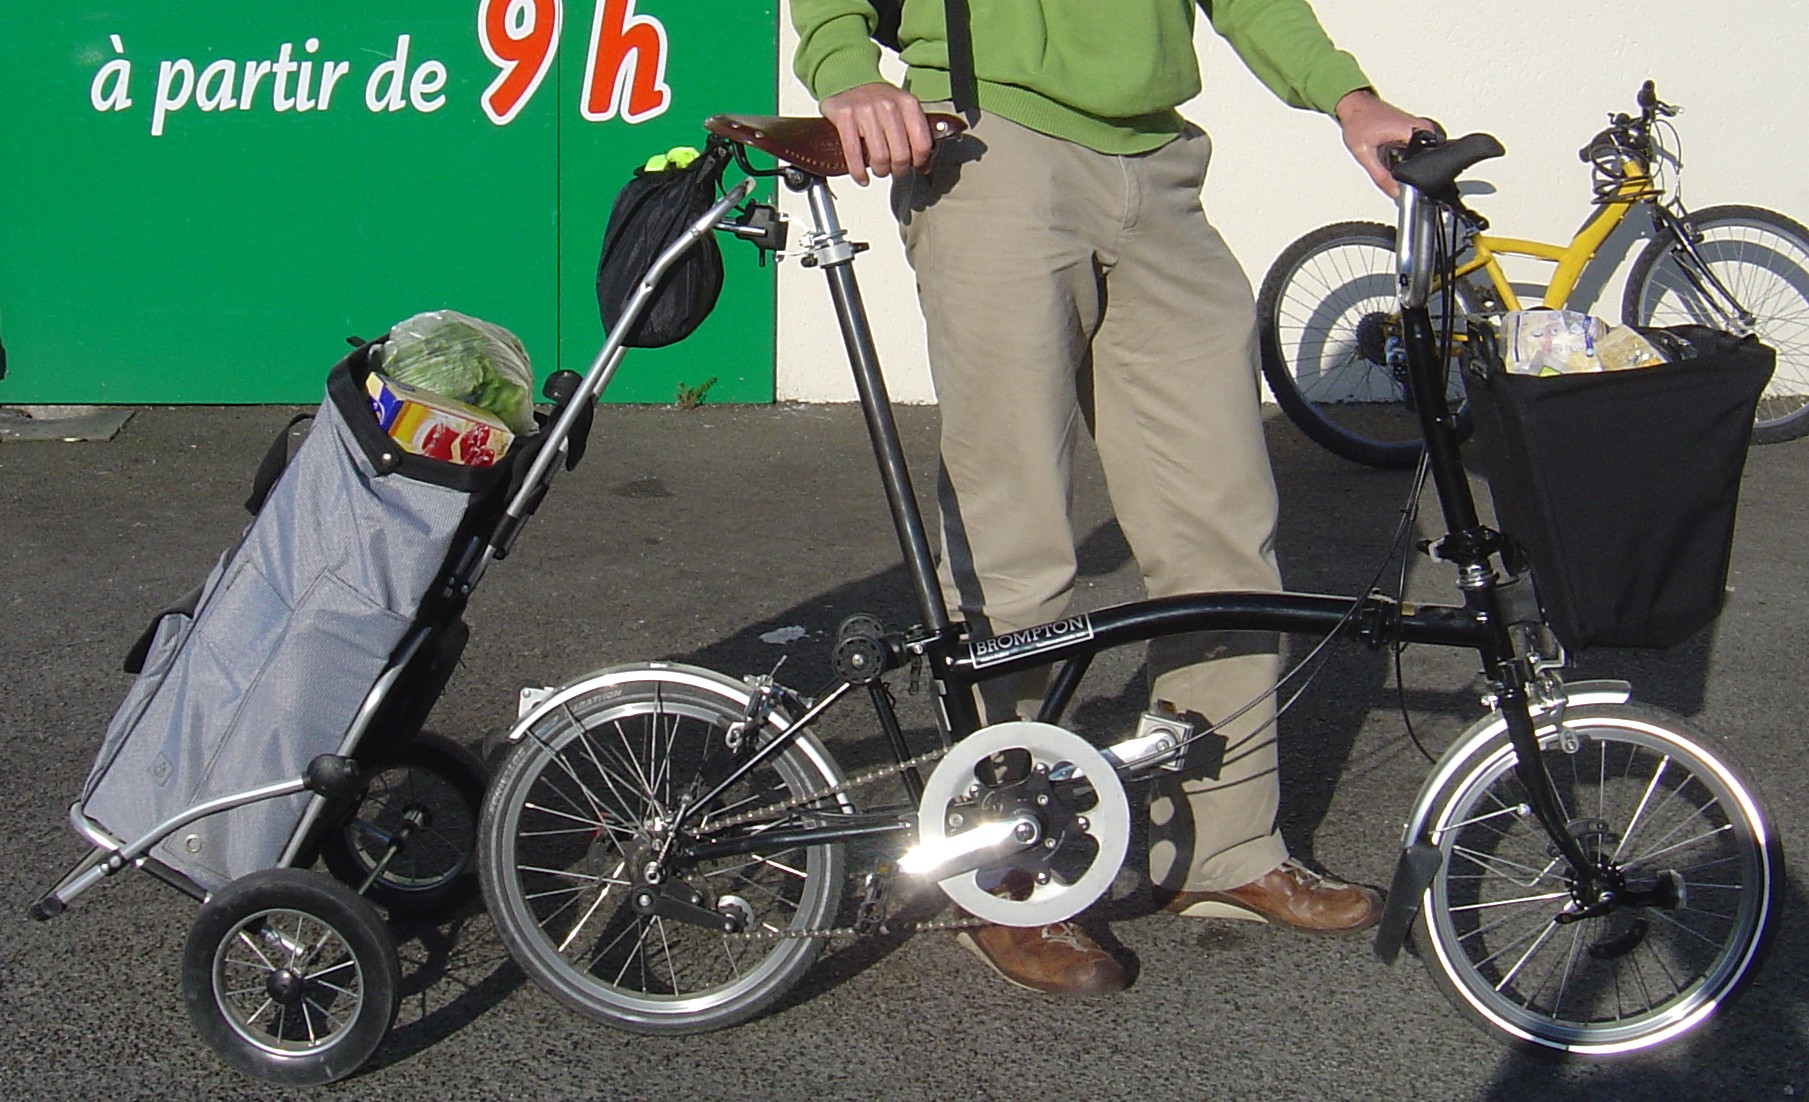 https://upload.wikimedia.org/wikipedia/commons/b/b2/Brompton_caddie_cabas.jpg